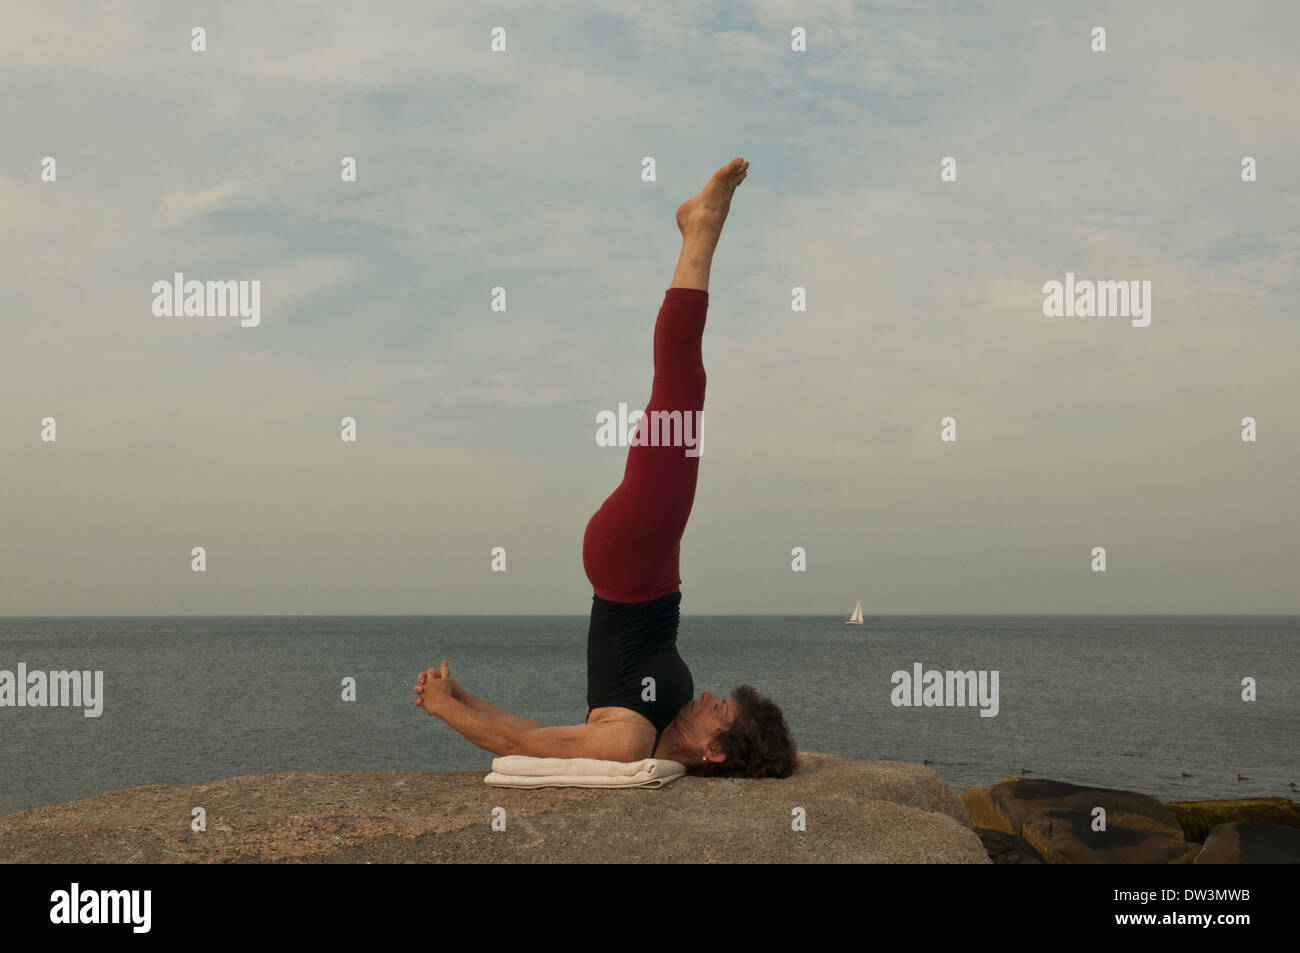 Iyengar Yoga Instructor Demonstrates asana. - Stock Image